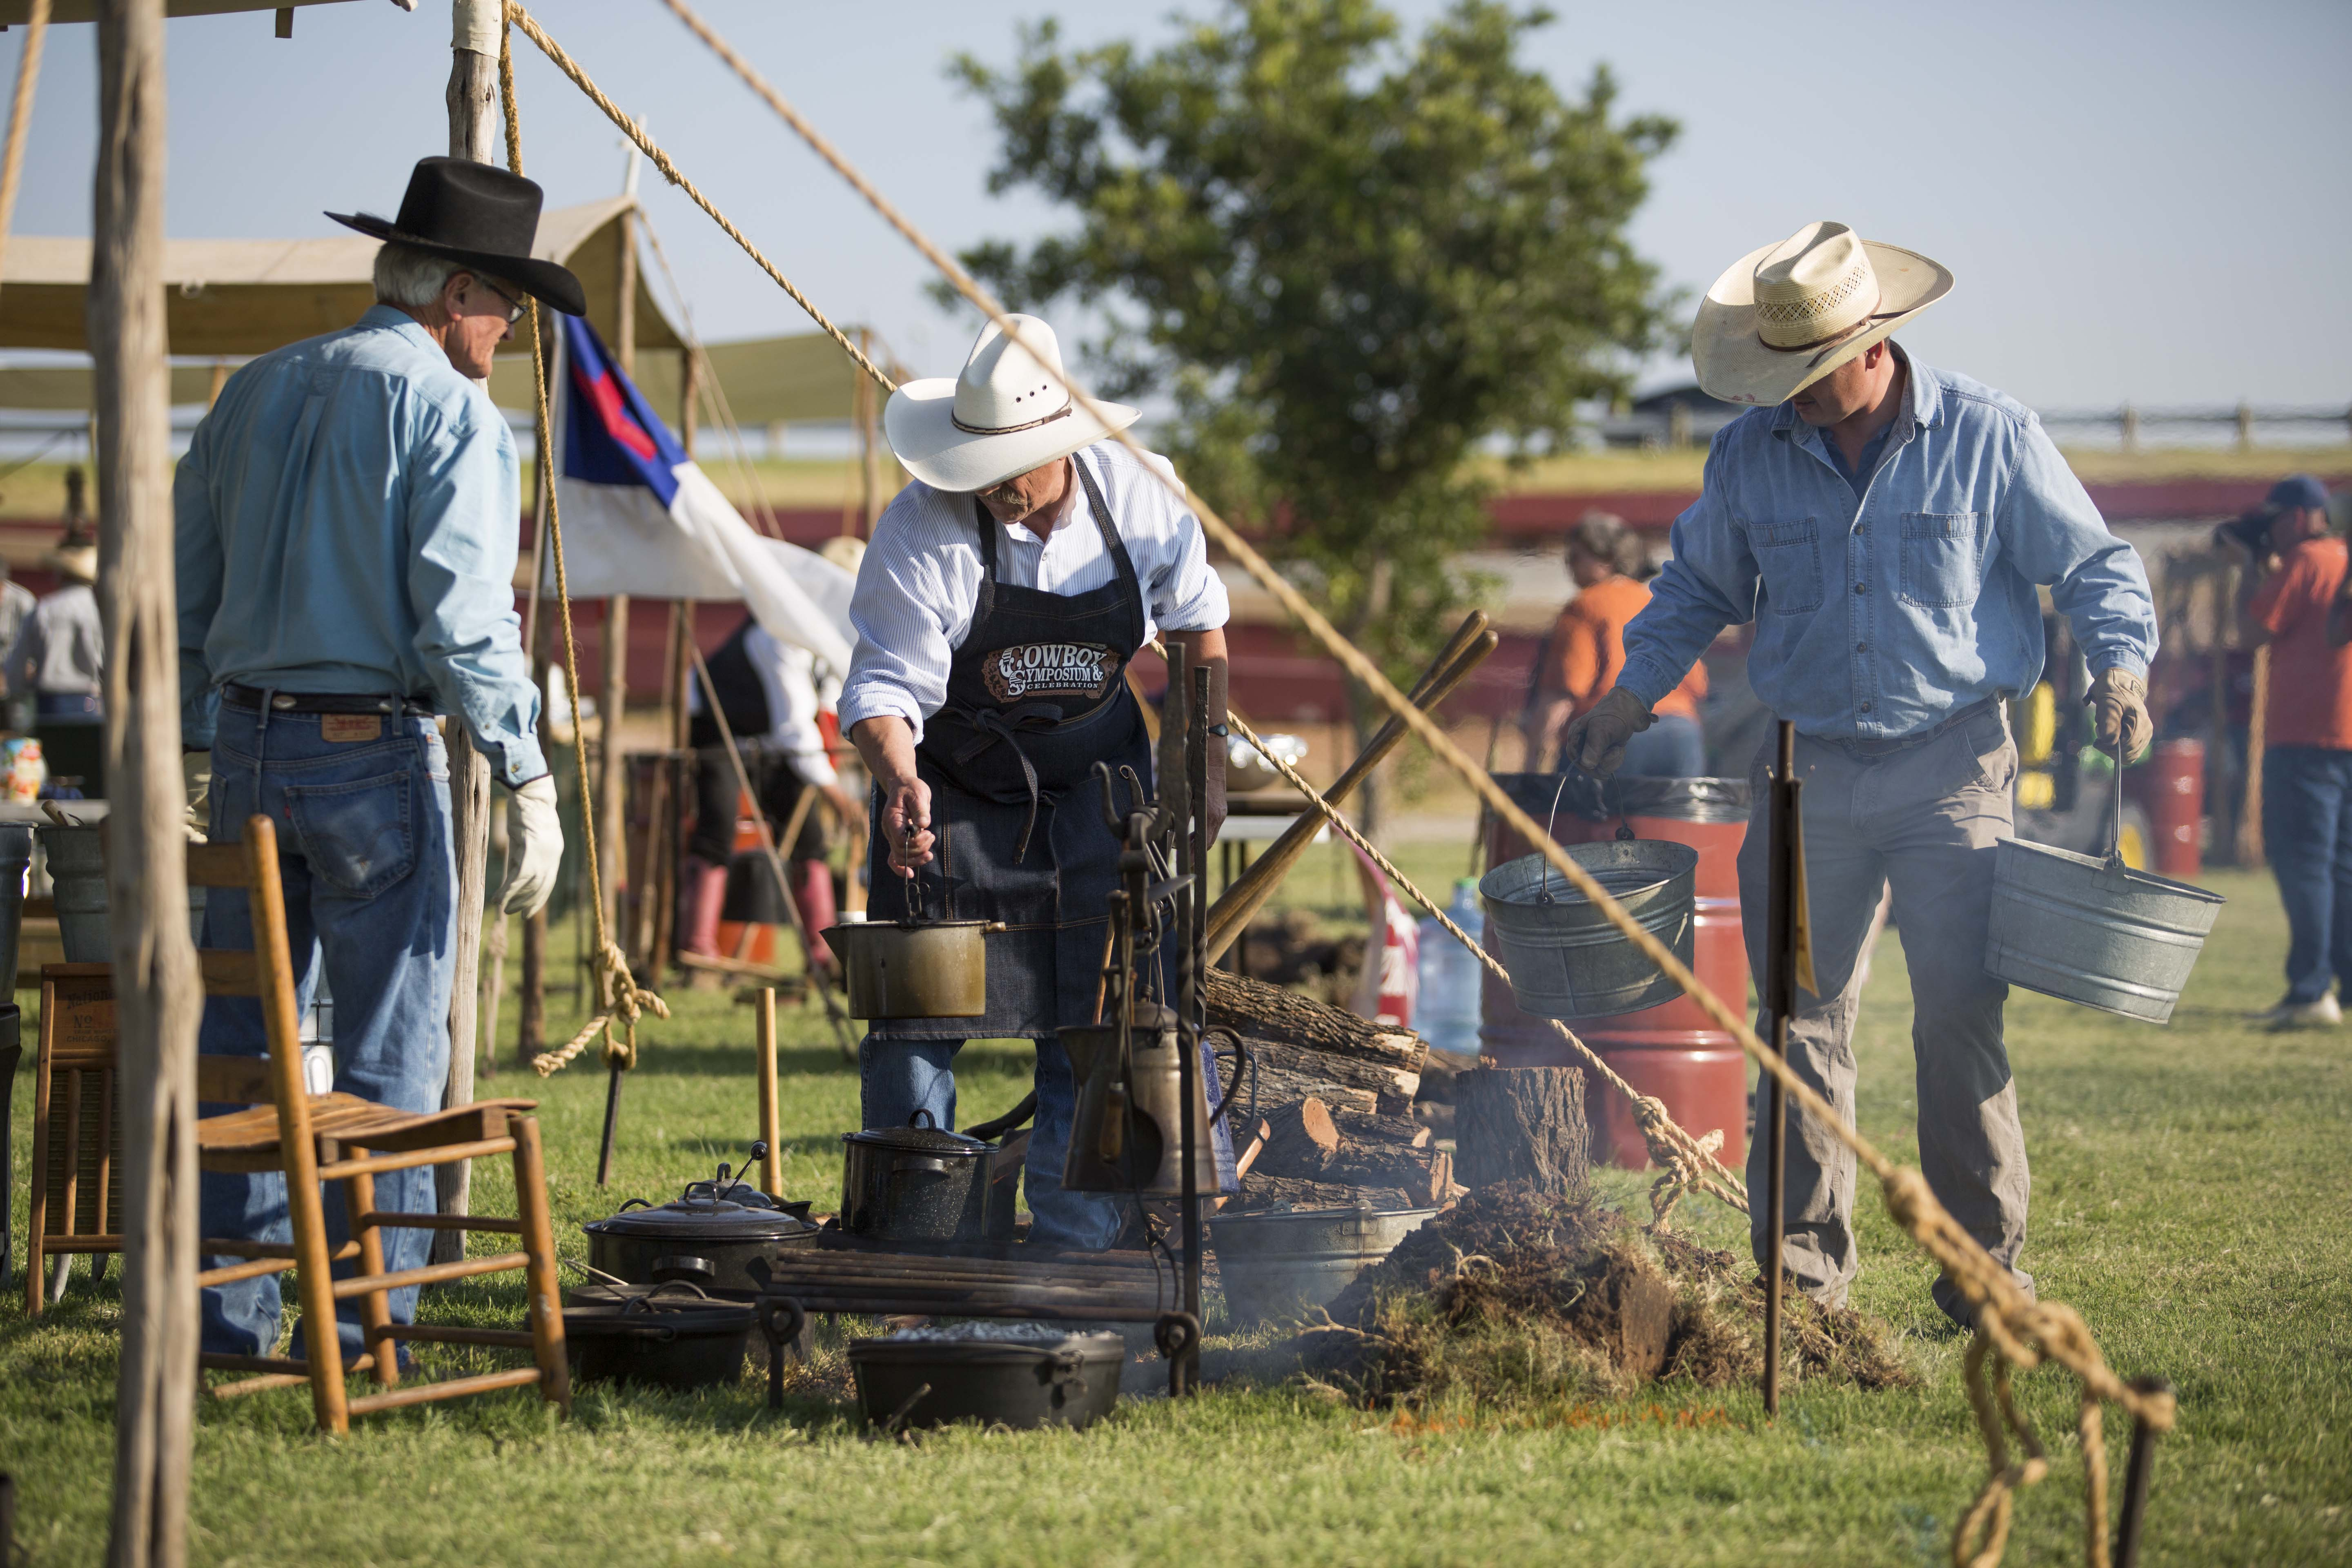 28th Annual National Cowboy Symposium & Celebration @ Lubbock Memorial Civic Center | Lubbock | Texas | United States